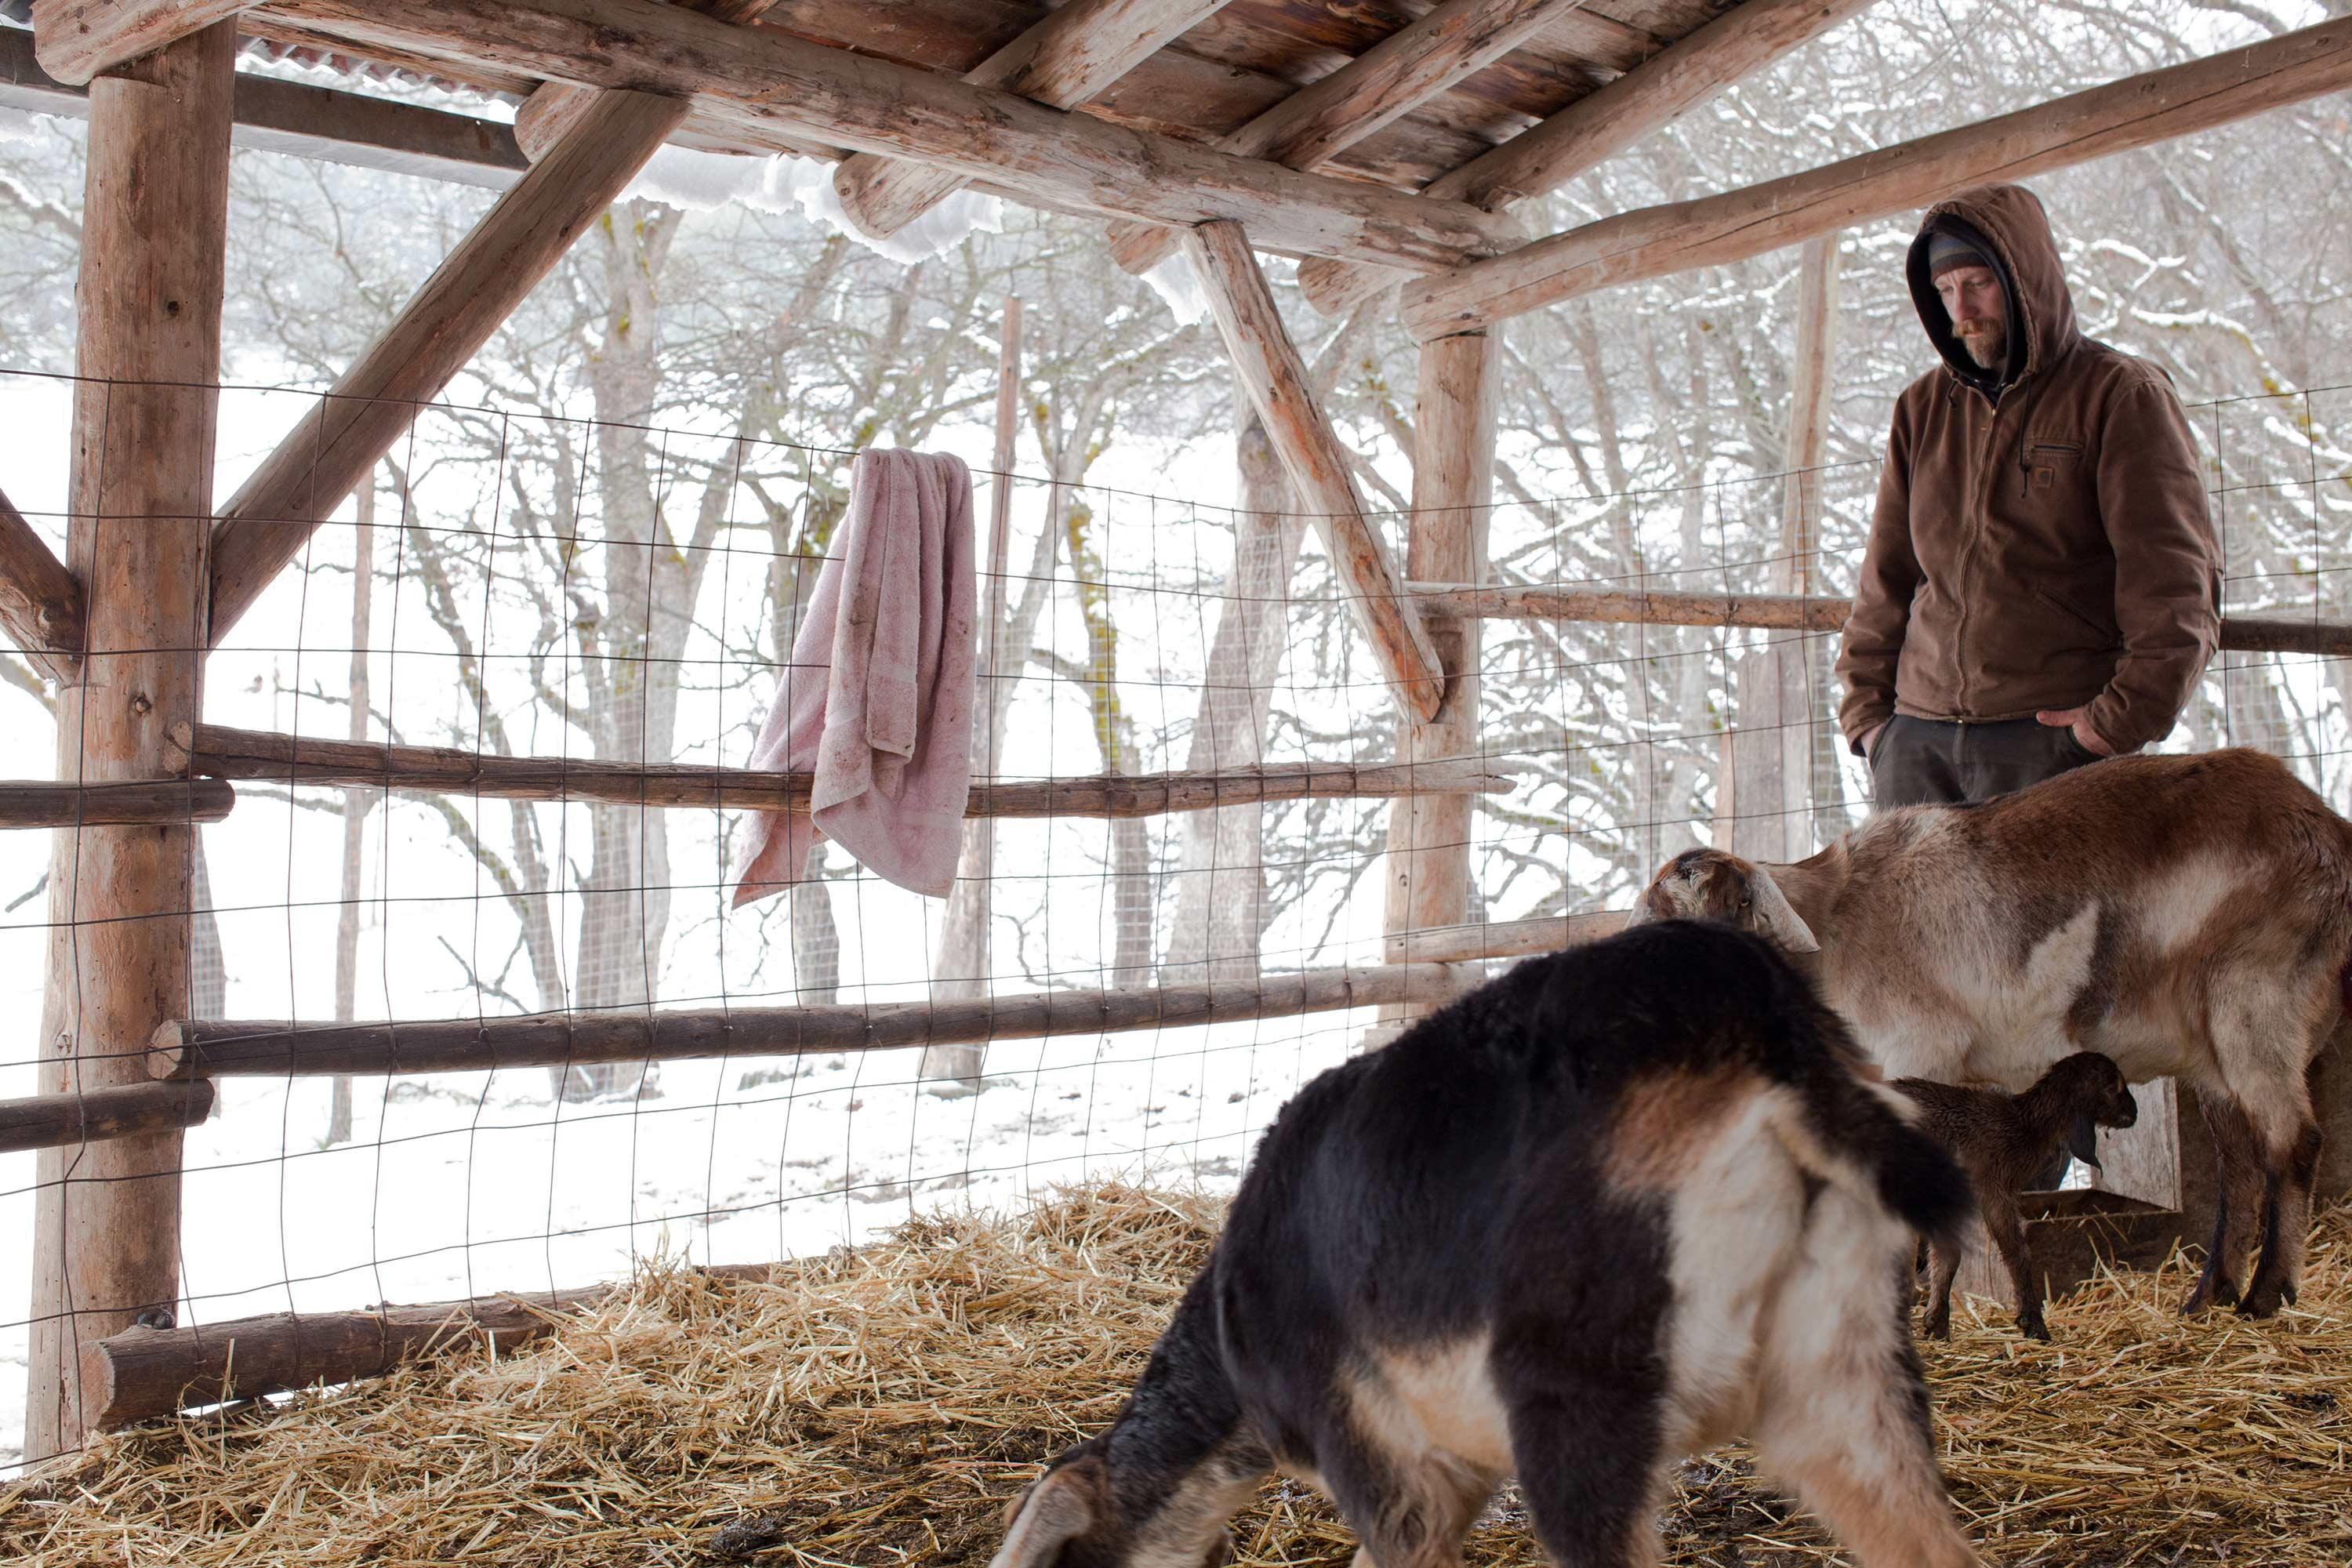 Boone_mookie-with-goats.jpg